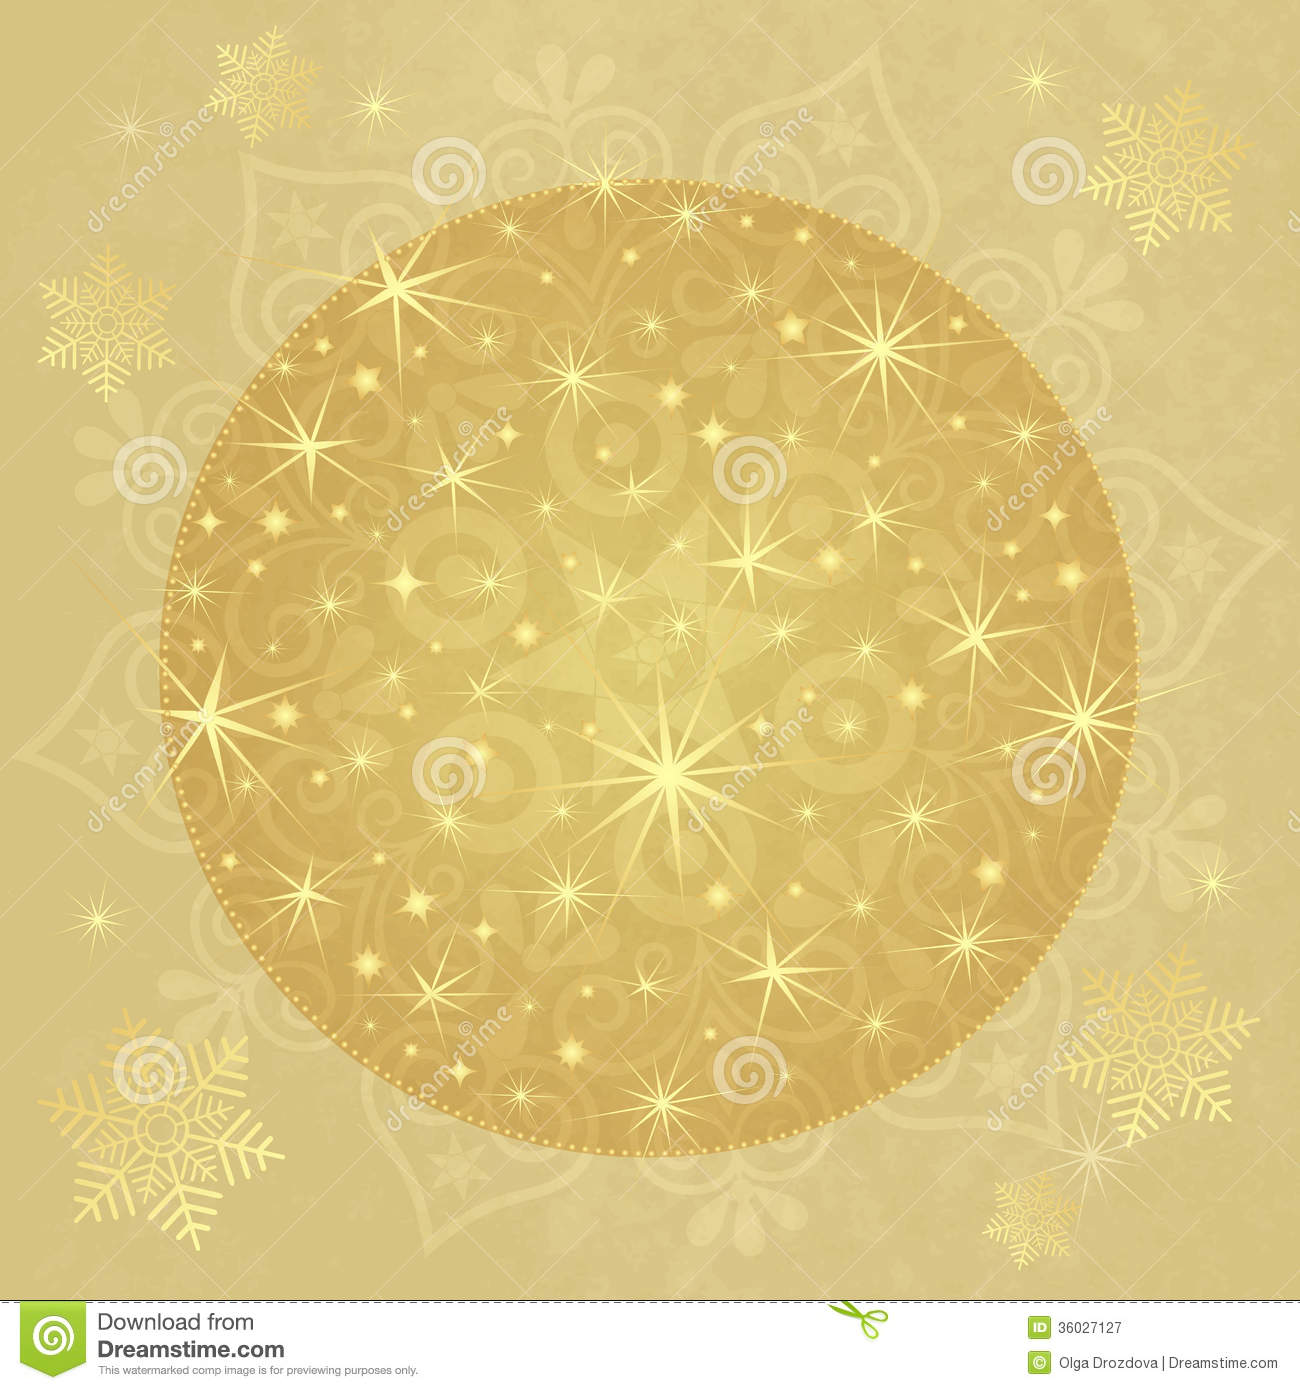 Christmas Paper With Gold Ball Stock Vector - Image: 36027127